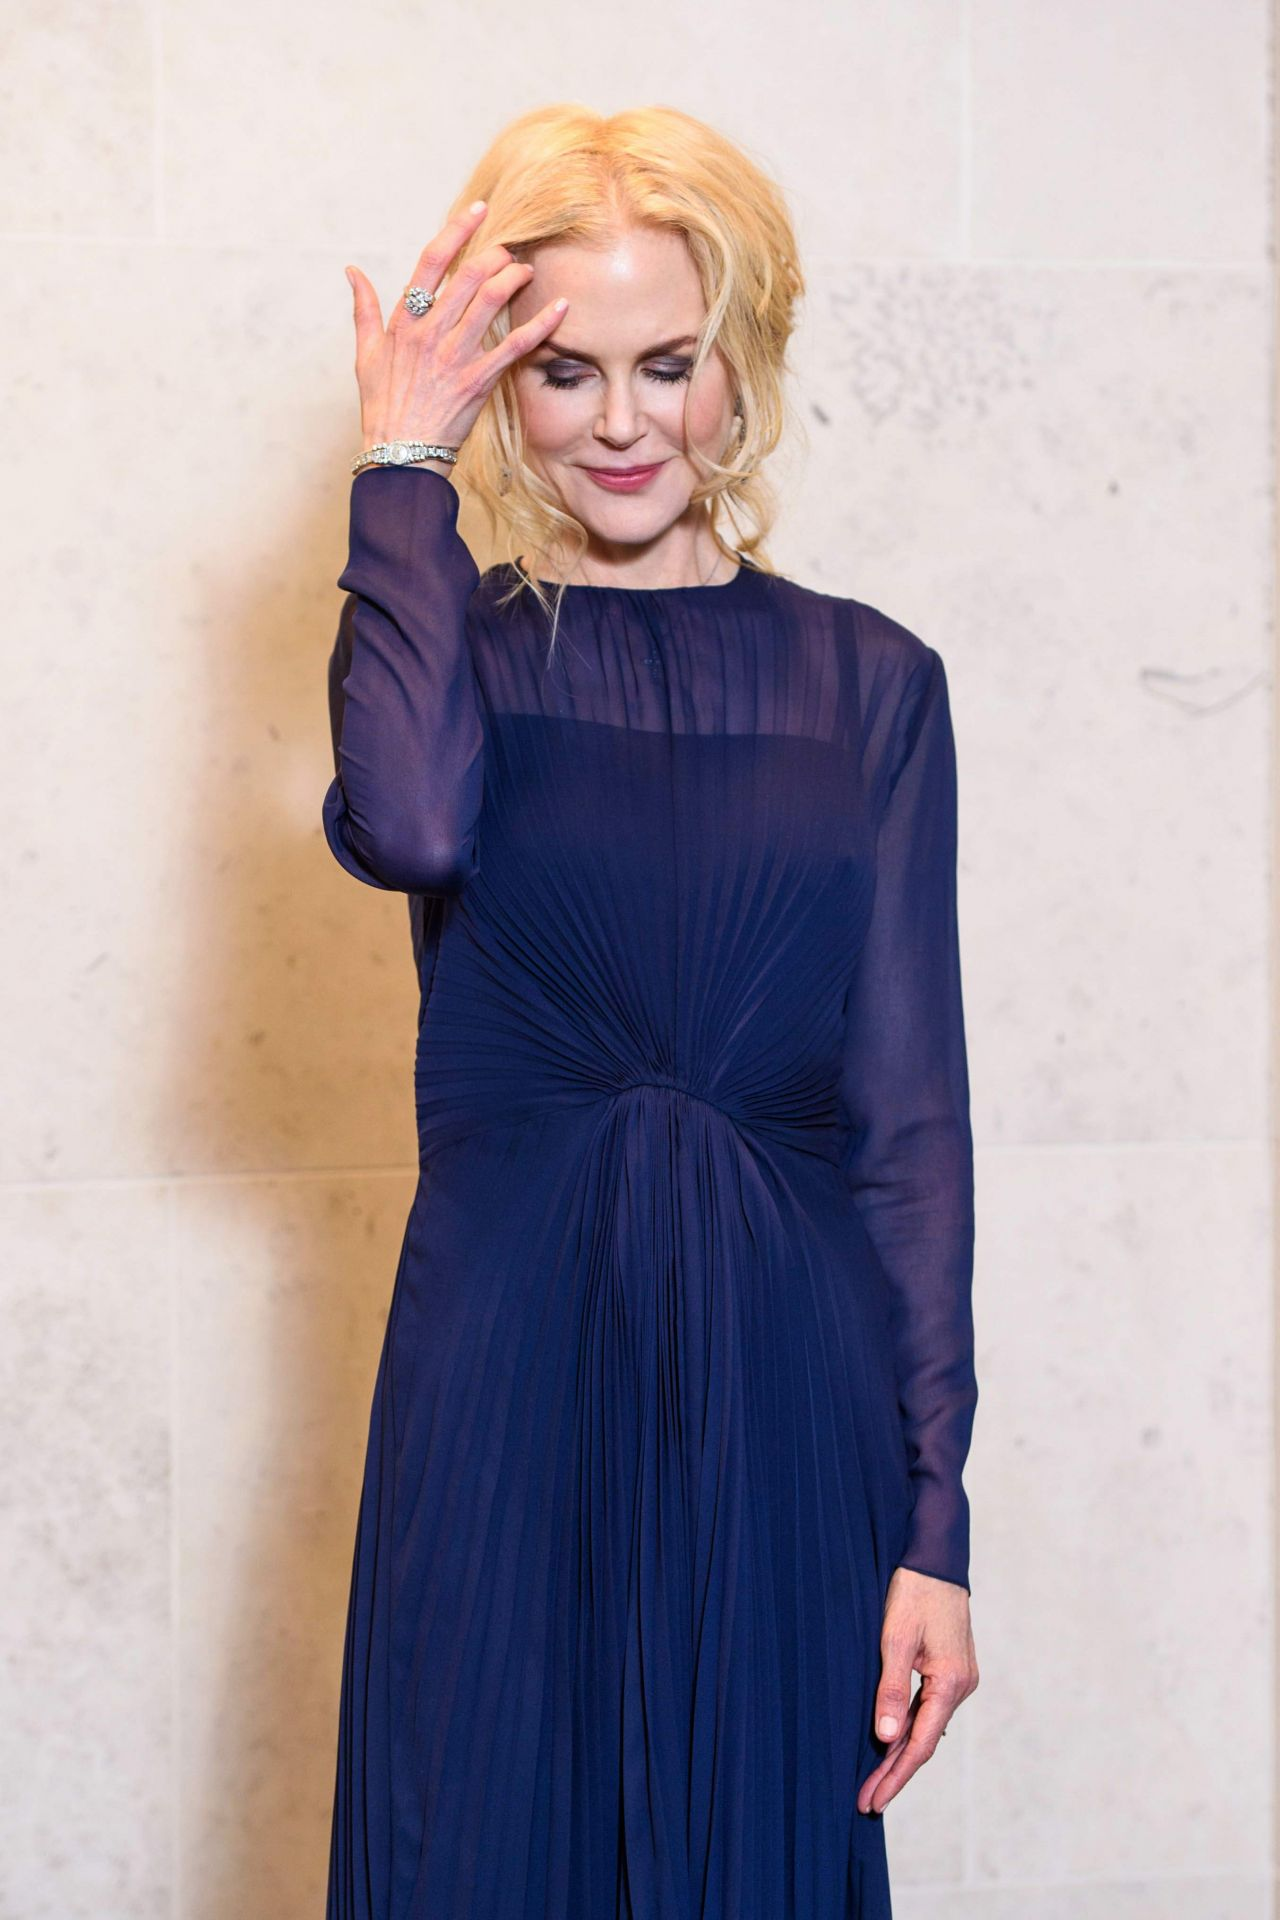 https://celebmafia.com/wp-content/uploads/2018/10/nicole-kidman-academy-of-motion-picture-arts-and-sciences-new-members-reception-in-london-10-13-2018-4.jpg